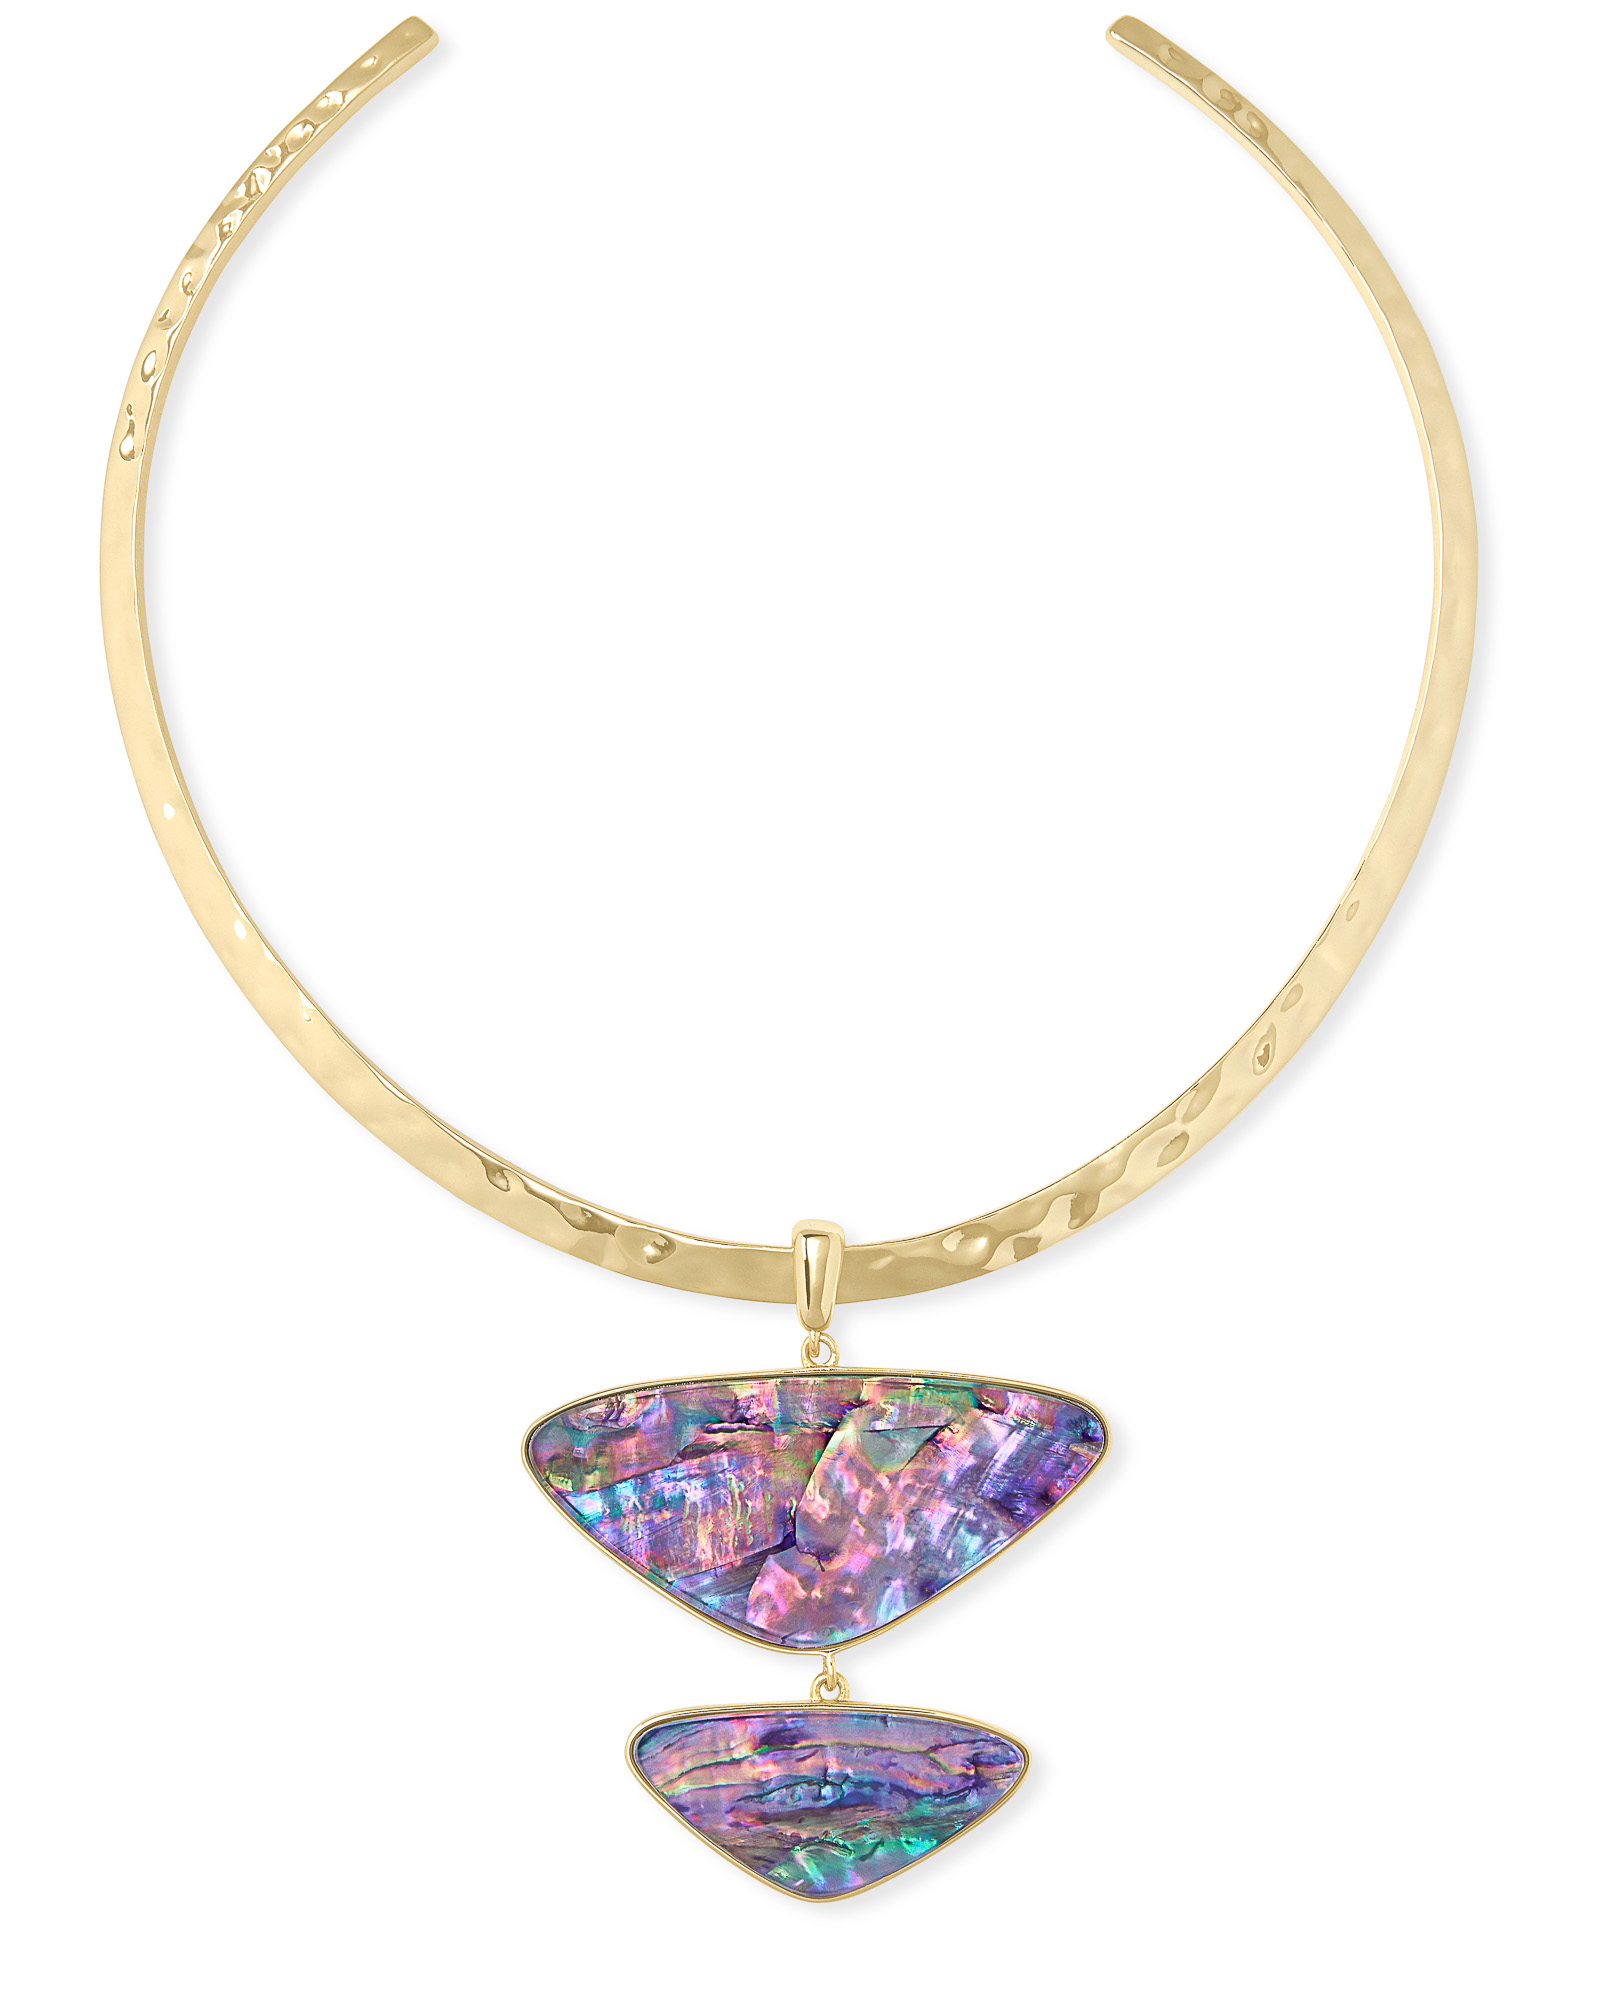 Margot Gold Statement Necklace in Lilac Abalone